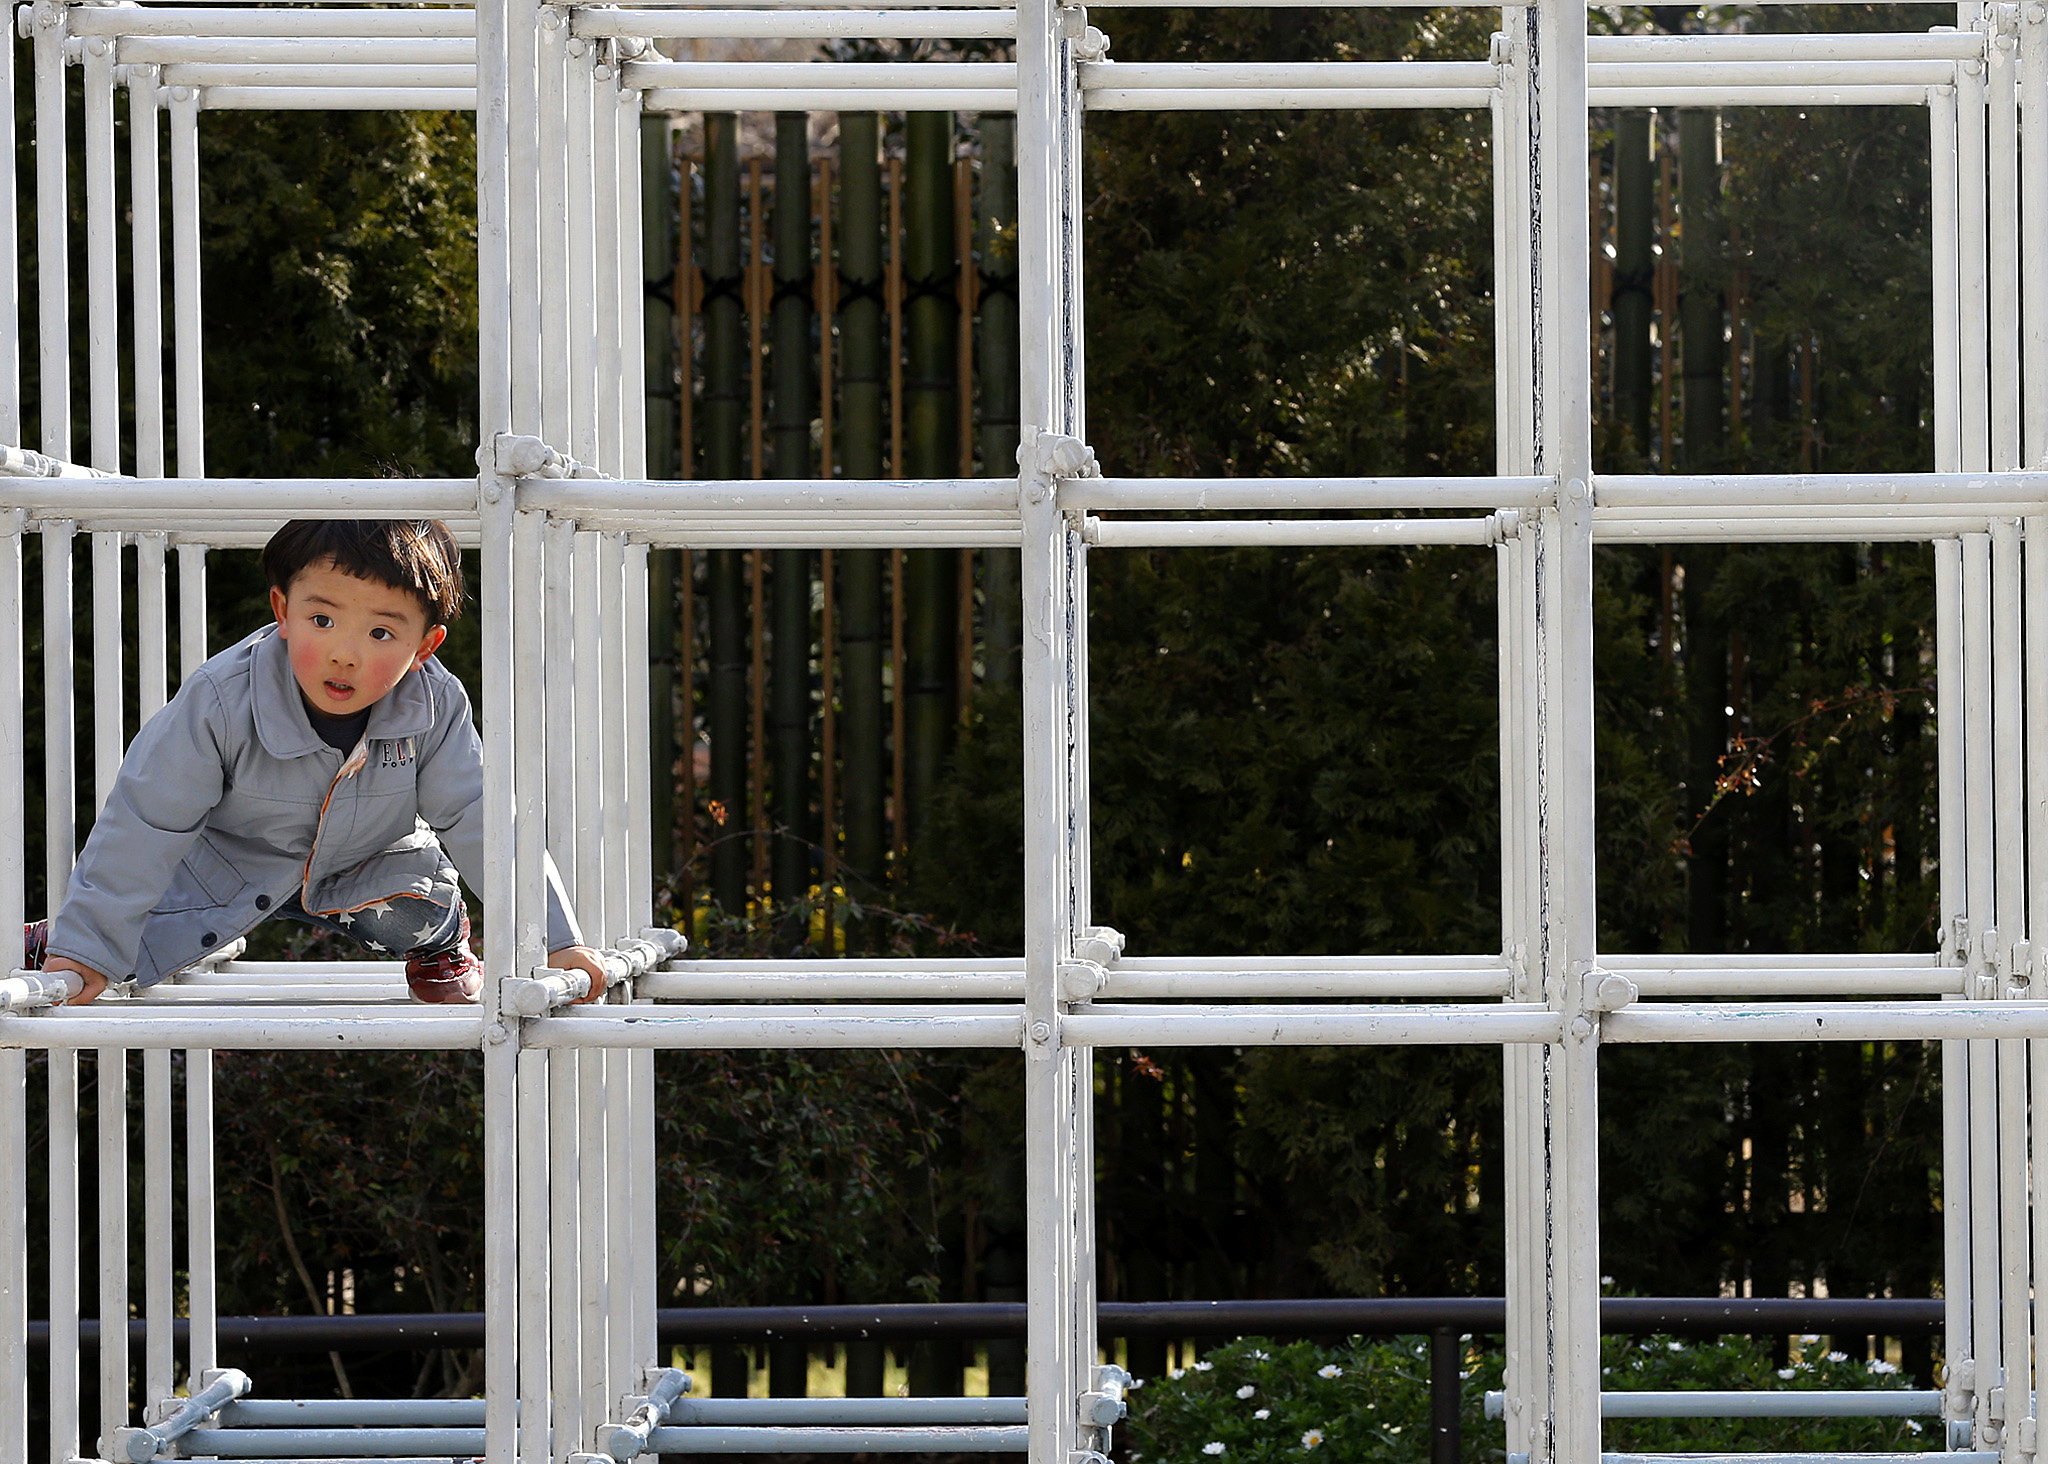 A boy plays on a jungle gym at Shiba park in Tokyo, Tuesday, Feb. 9, 2016. (AP Photo/Shizuo Kambayashi)